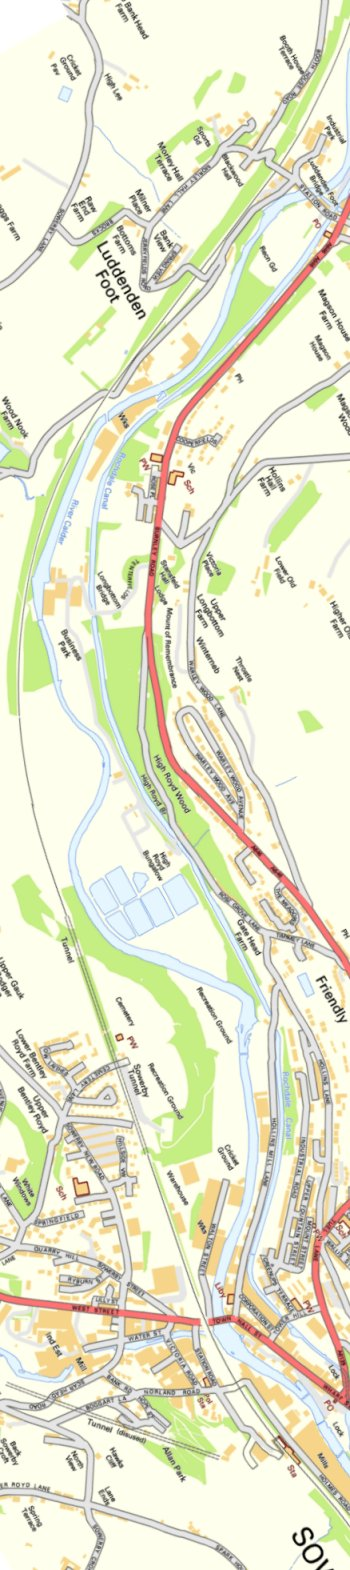 Section from Ordnance Survey OpenSource mapping 2013 showing L&YR railway line from Luddendenfoot to Sowerby Bridge